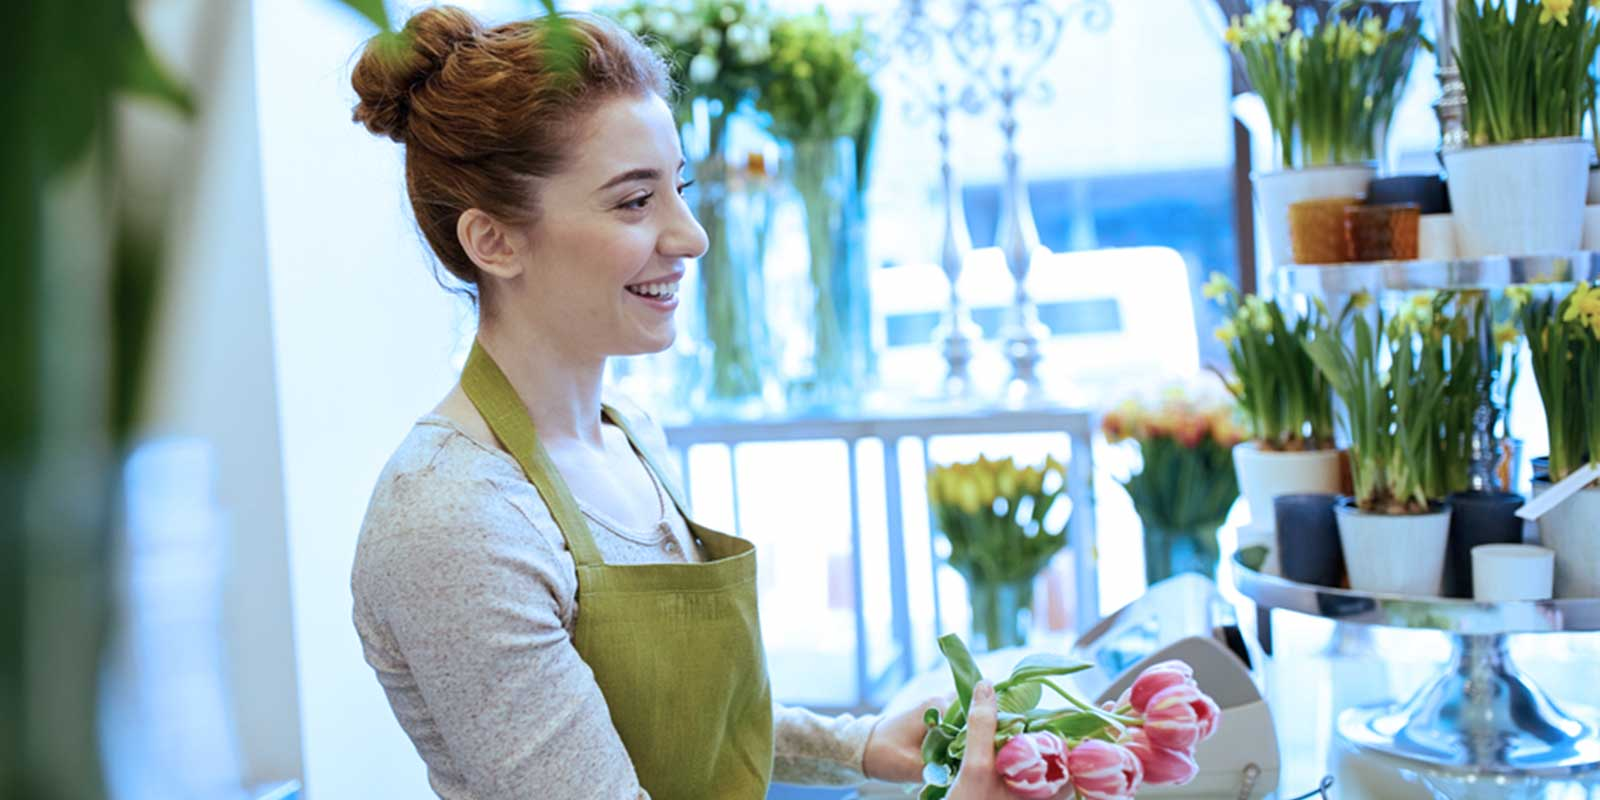 Florist serving clients showing value of branded photography